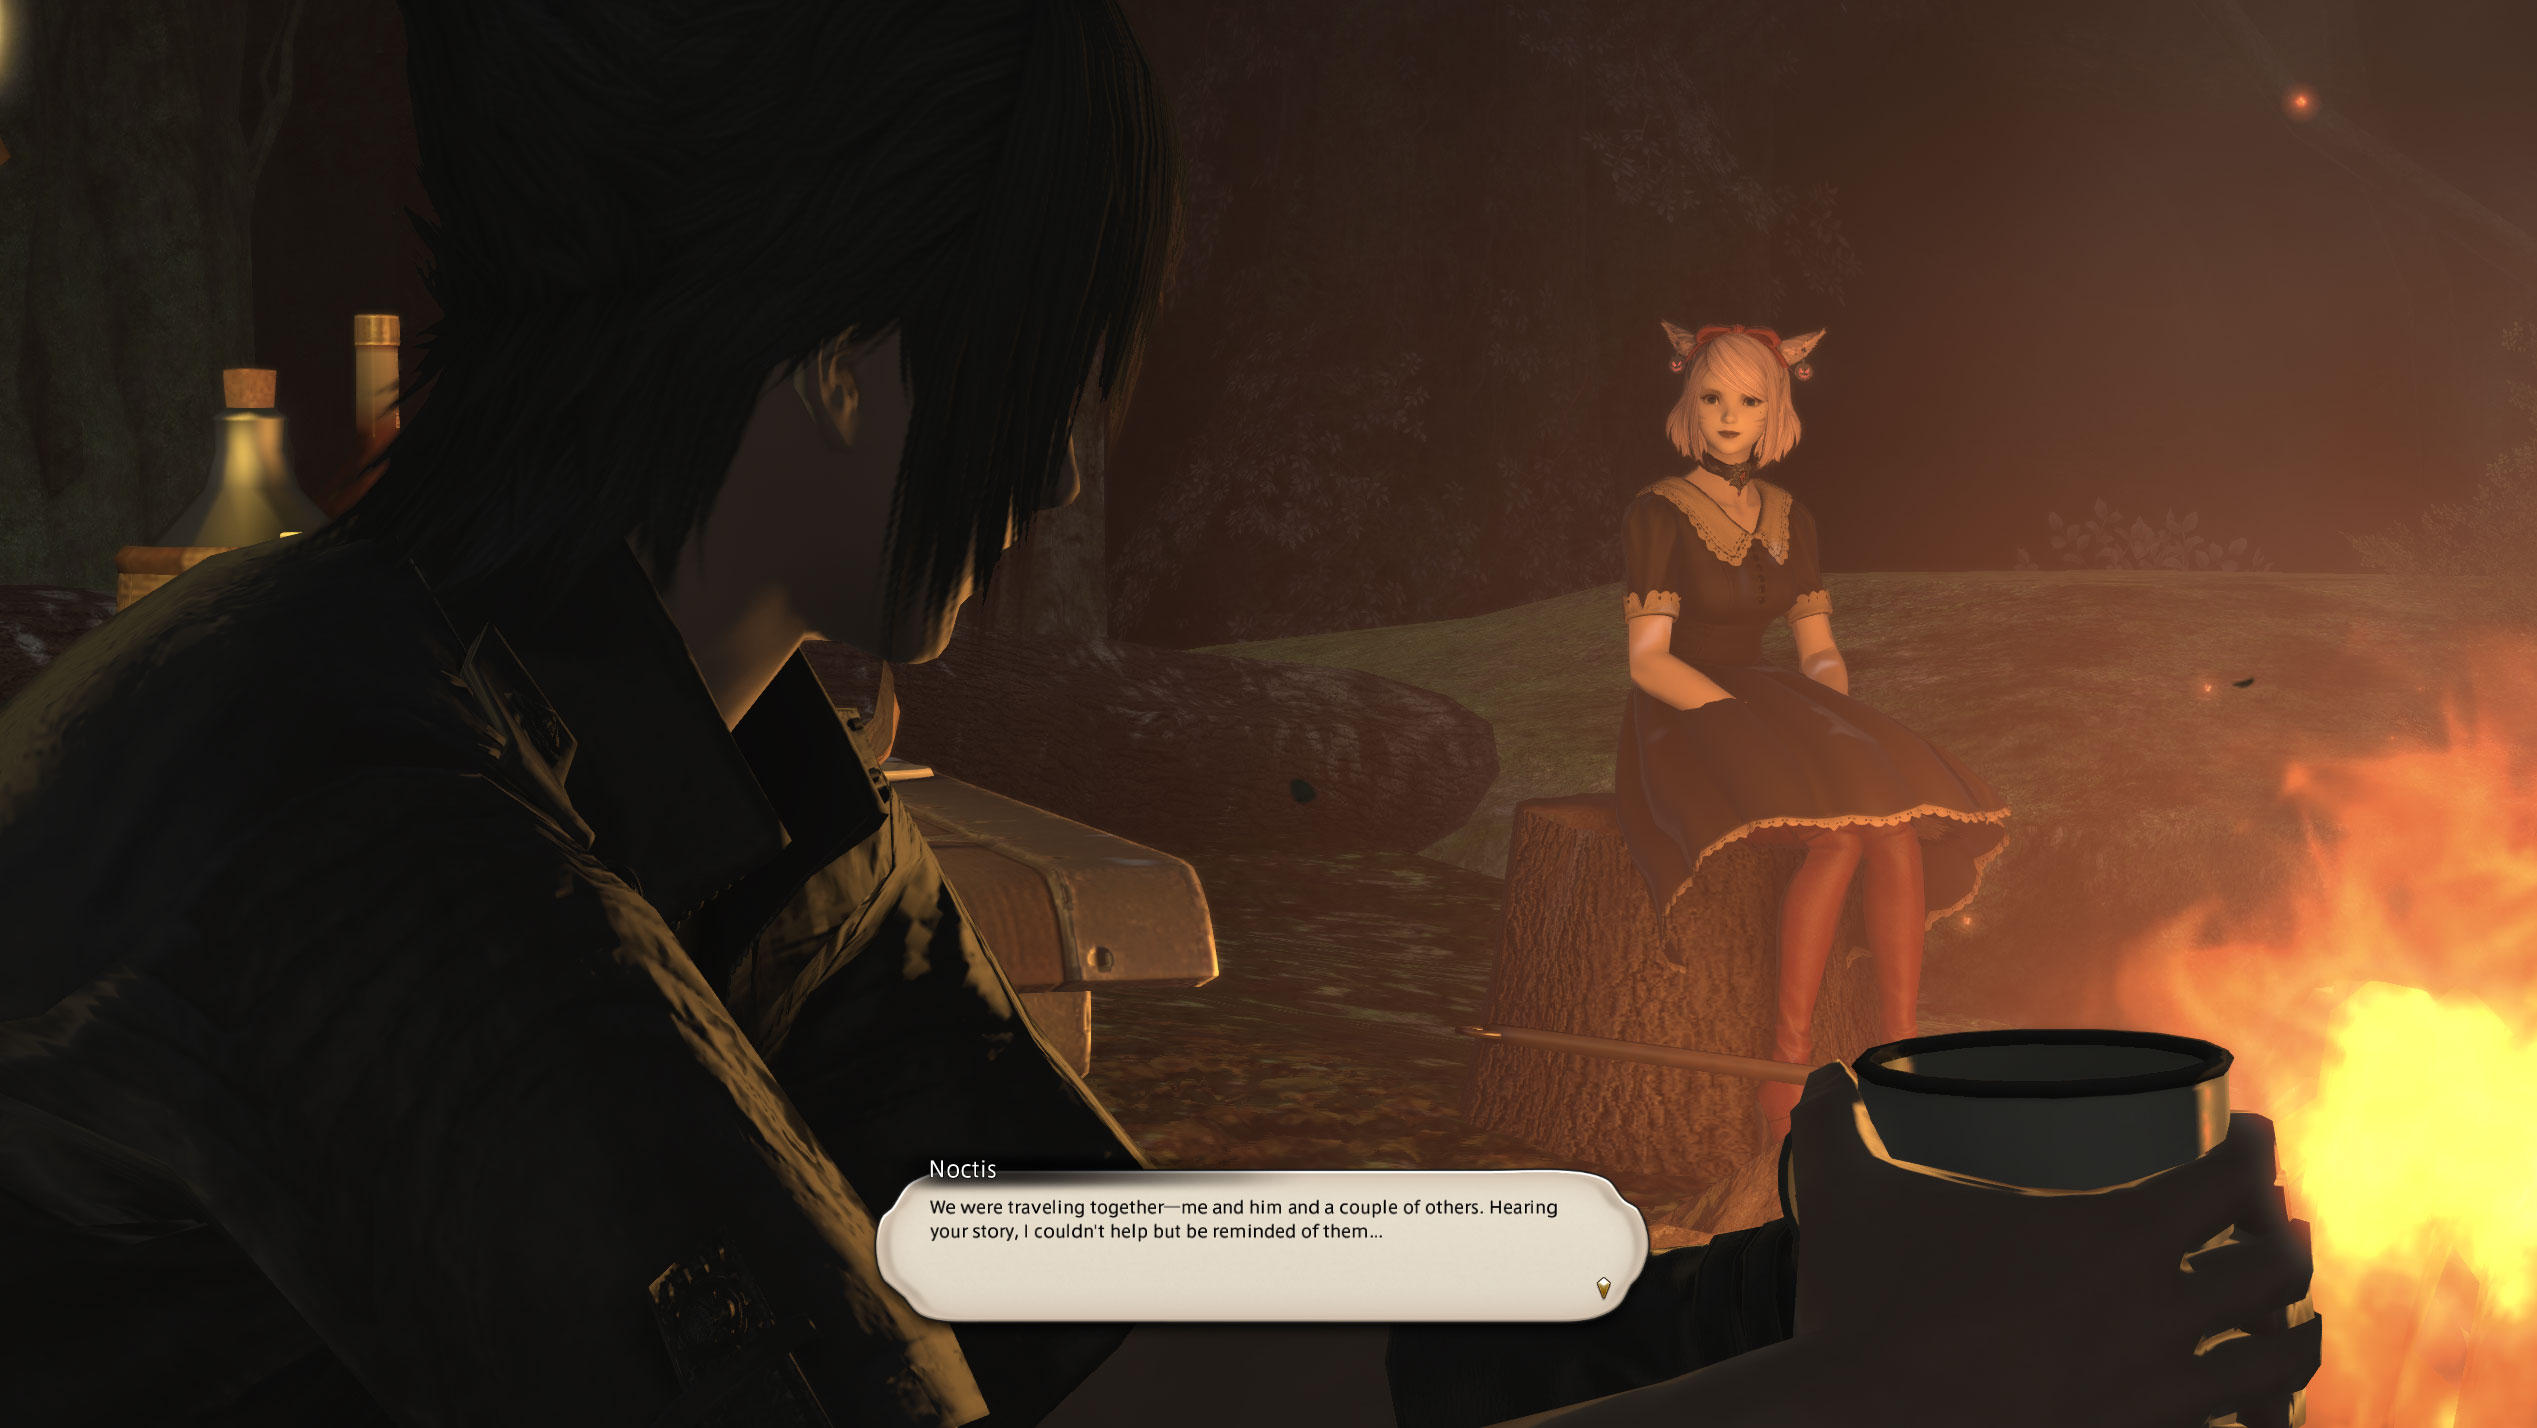 Final Fantasy XIV, my warrior of light sitting at a campfire with Noctis while he talks about his past. We're in love